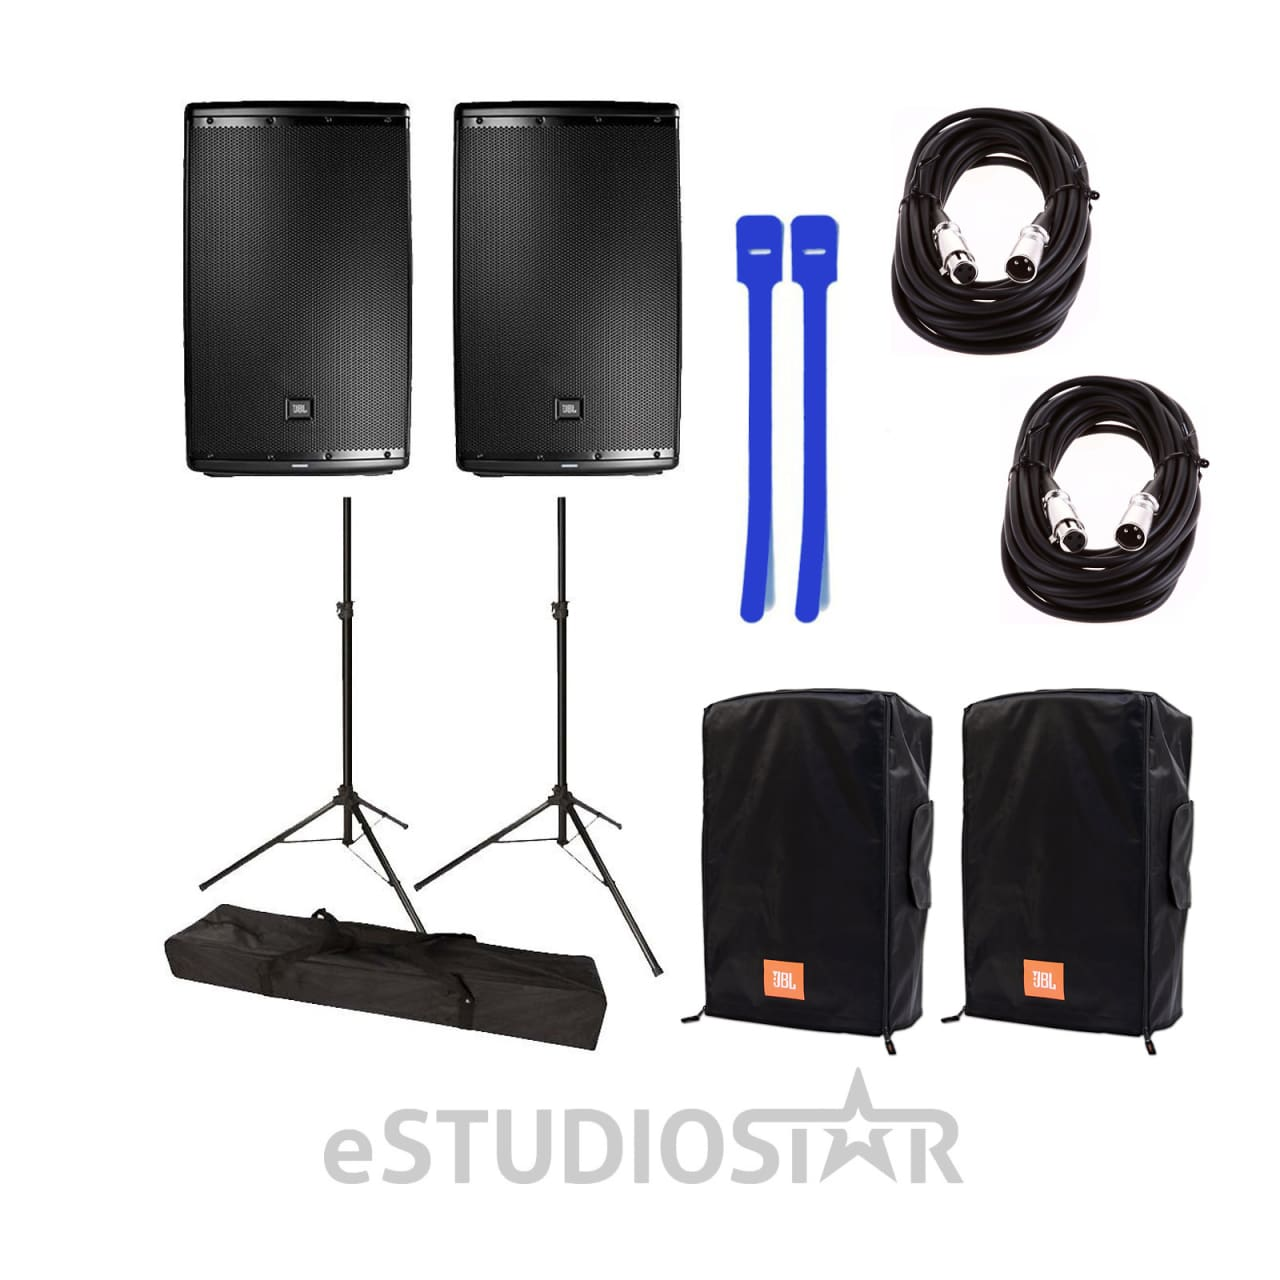 Jbl Eon615 15 2 Way Speaker W Tripod Stands Covers Xlr